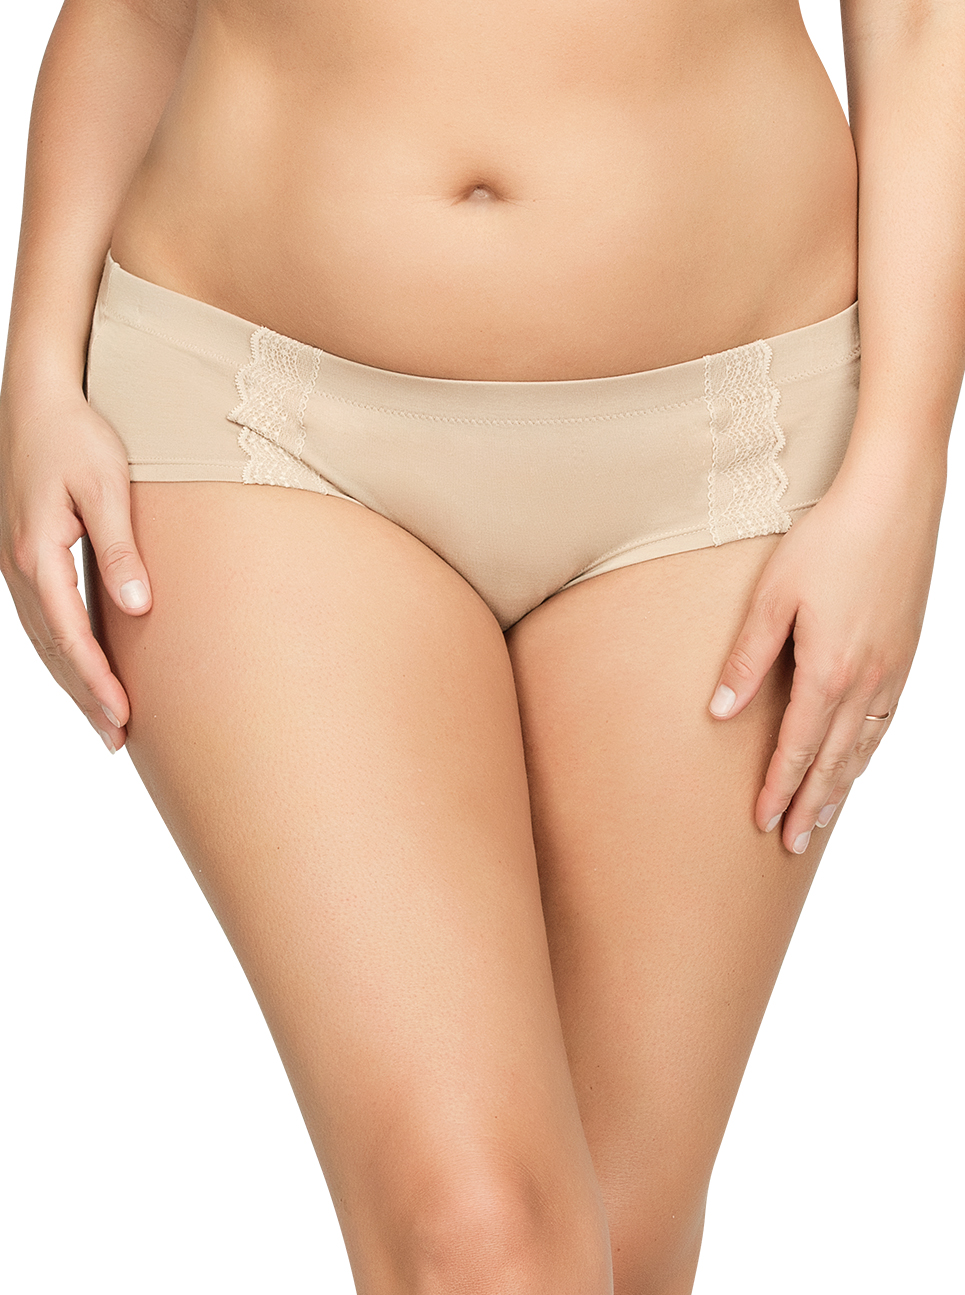 PARFAIT Dalis HipsterP5645 Bare Front - Dalis Hipster - Bare - P5645